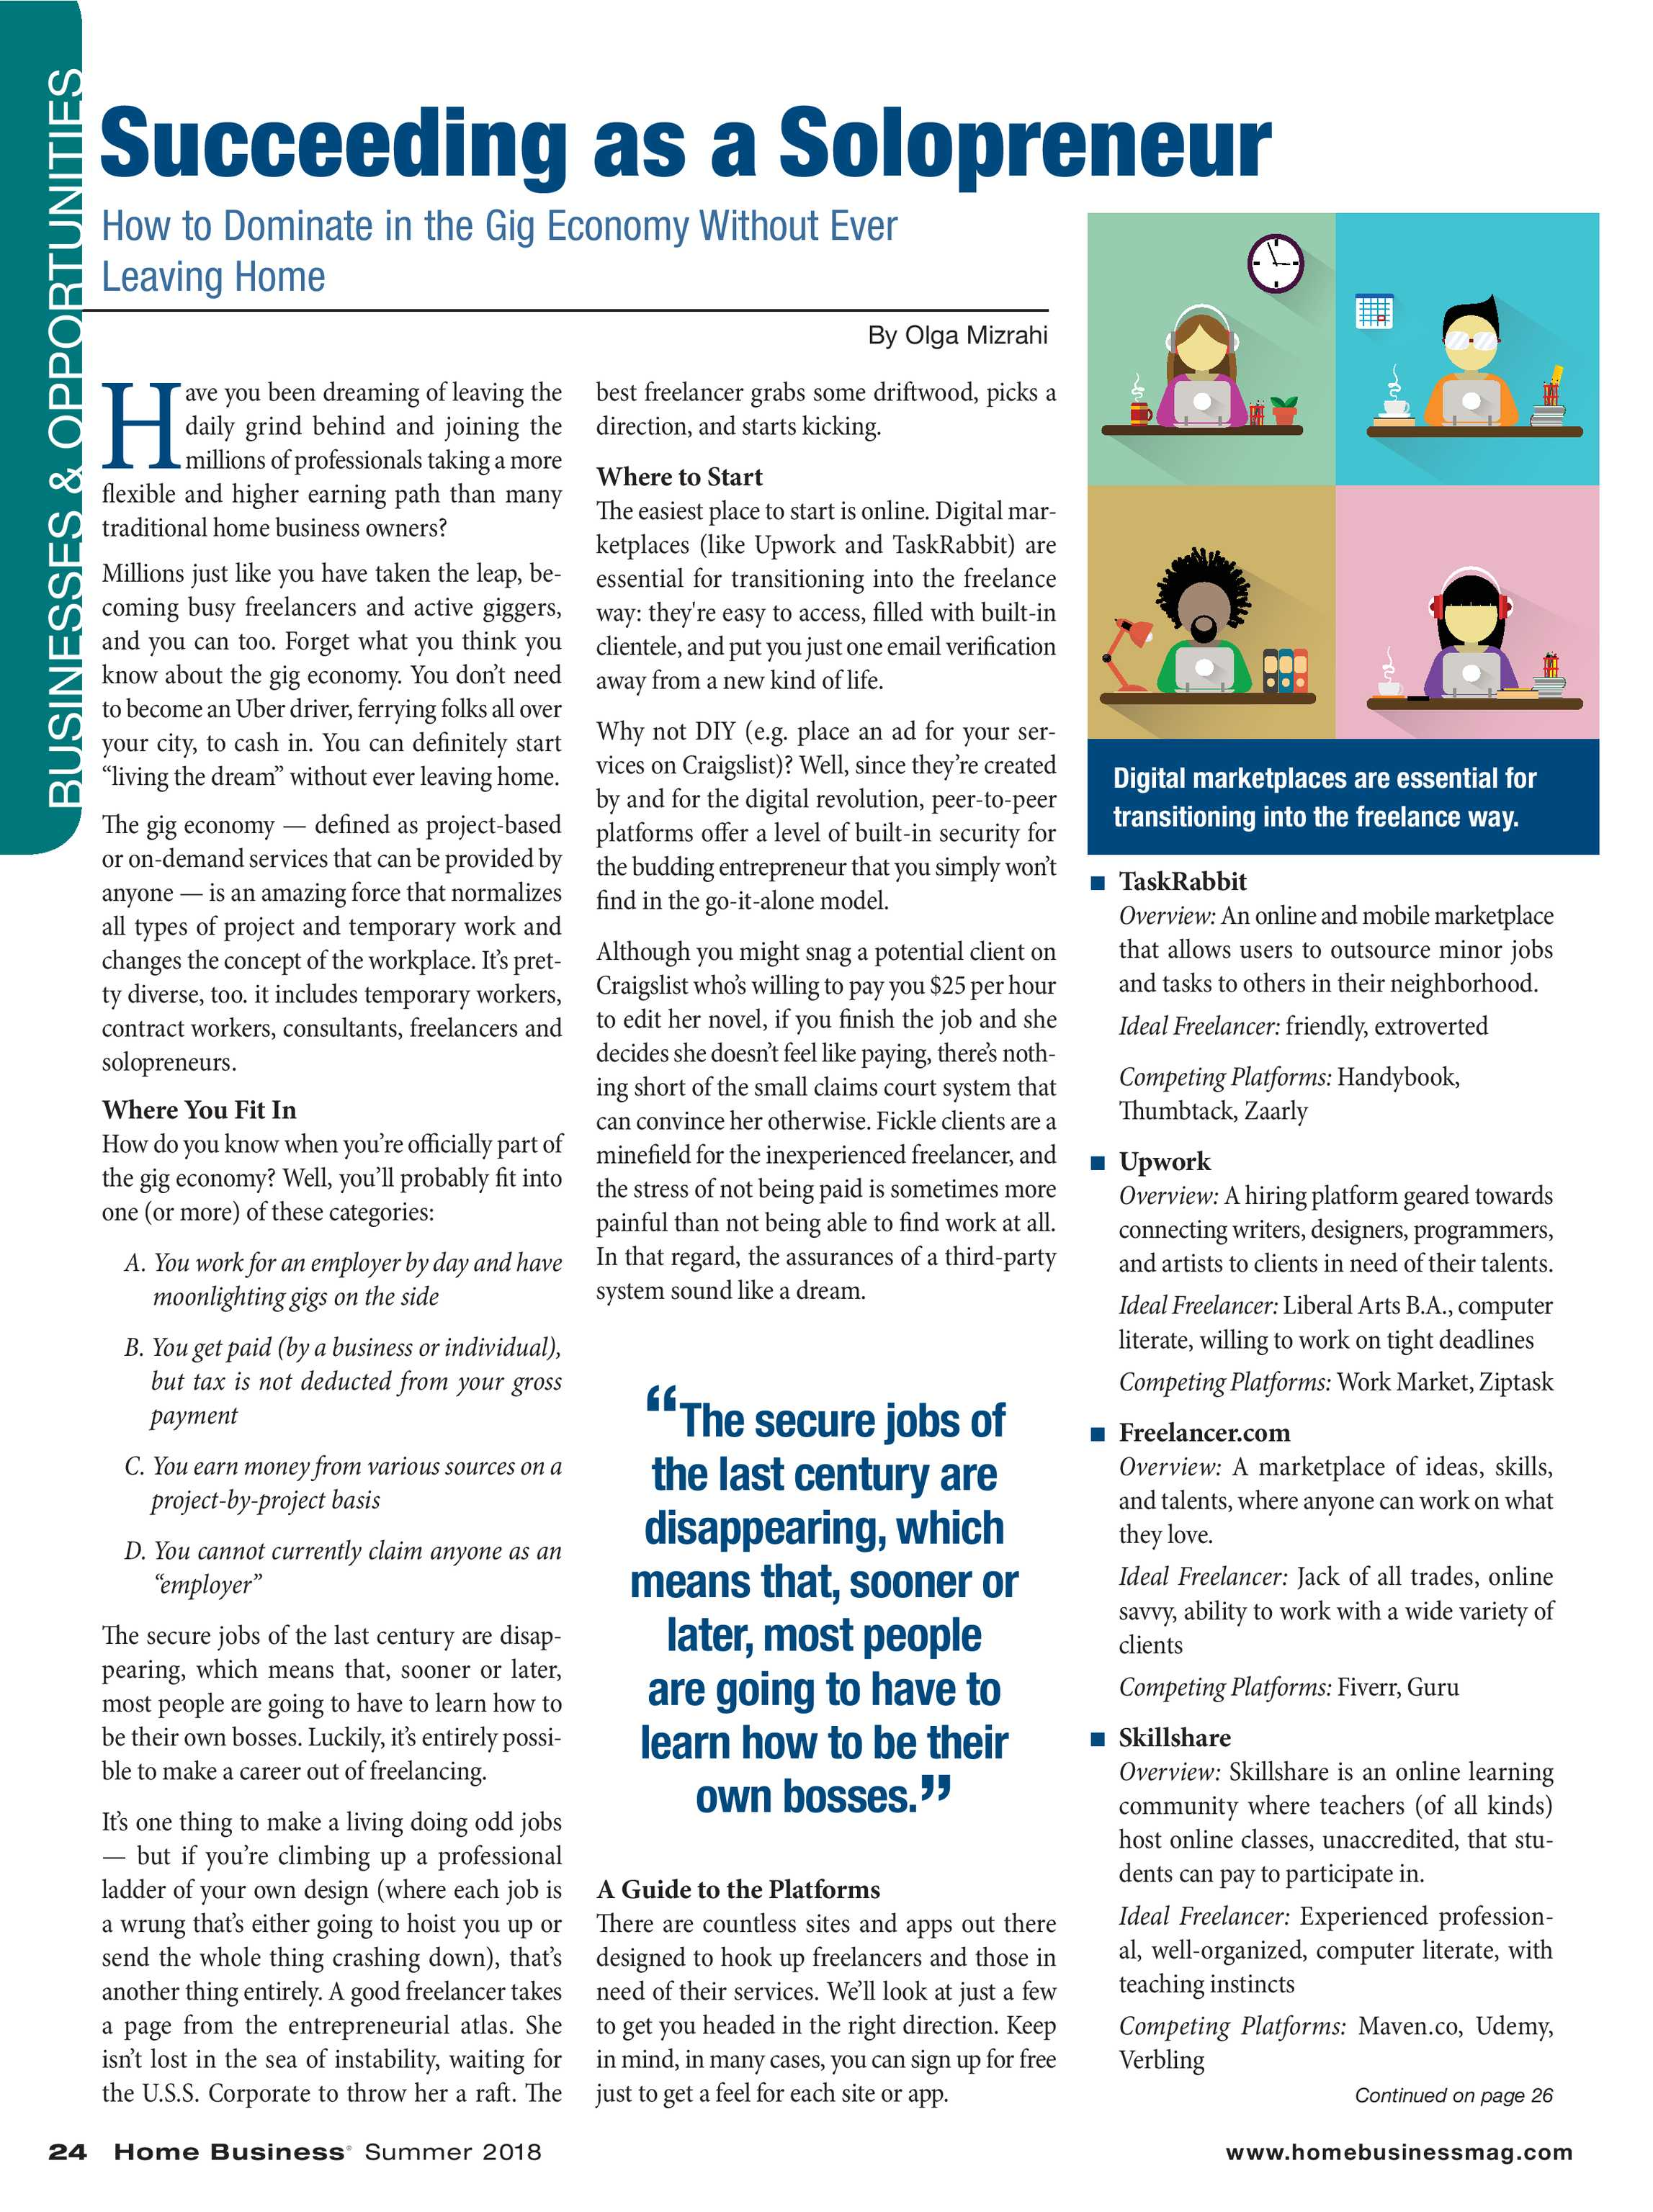 Home Business Magazine - Summer 2018 - page 24